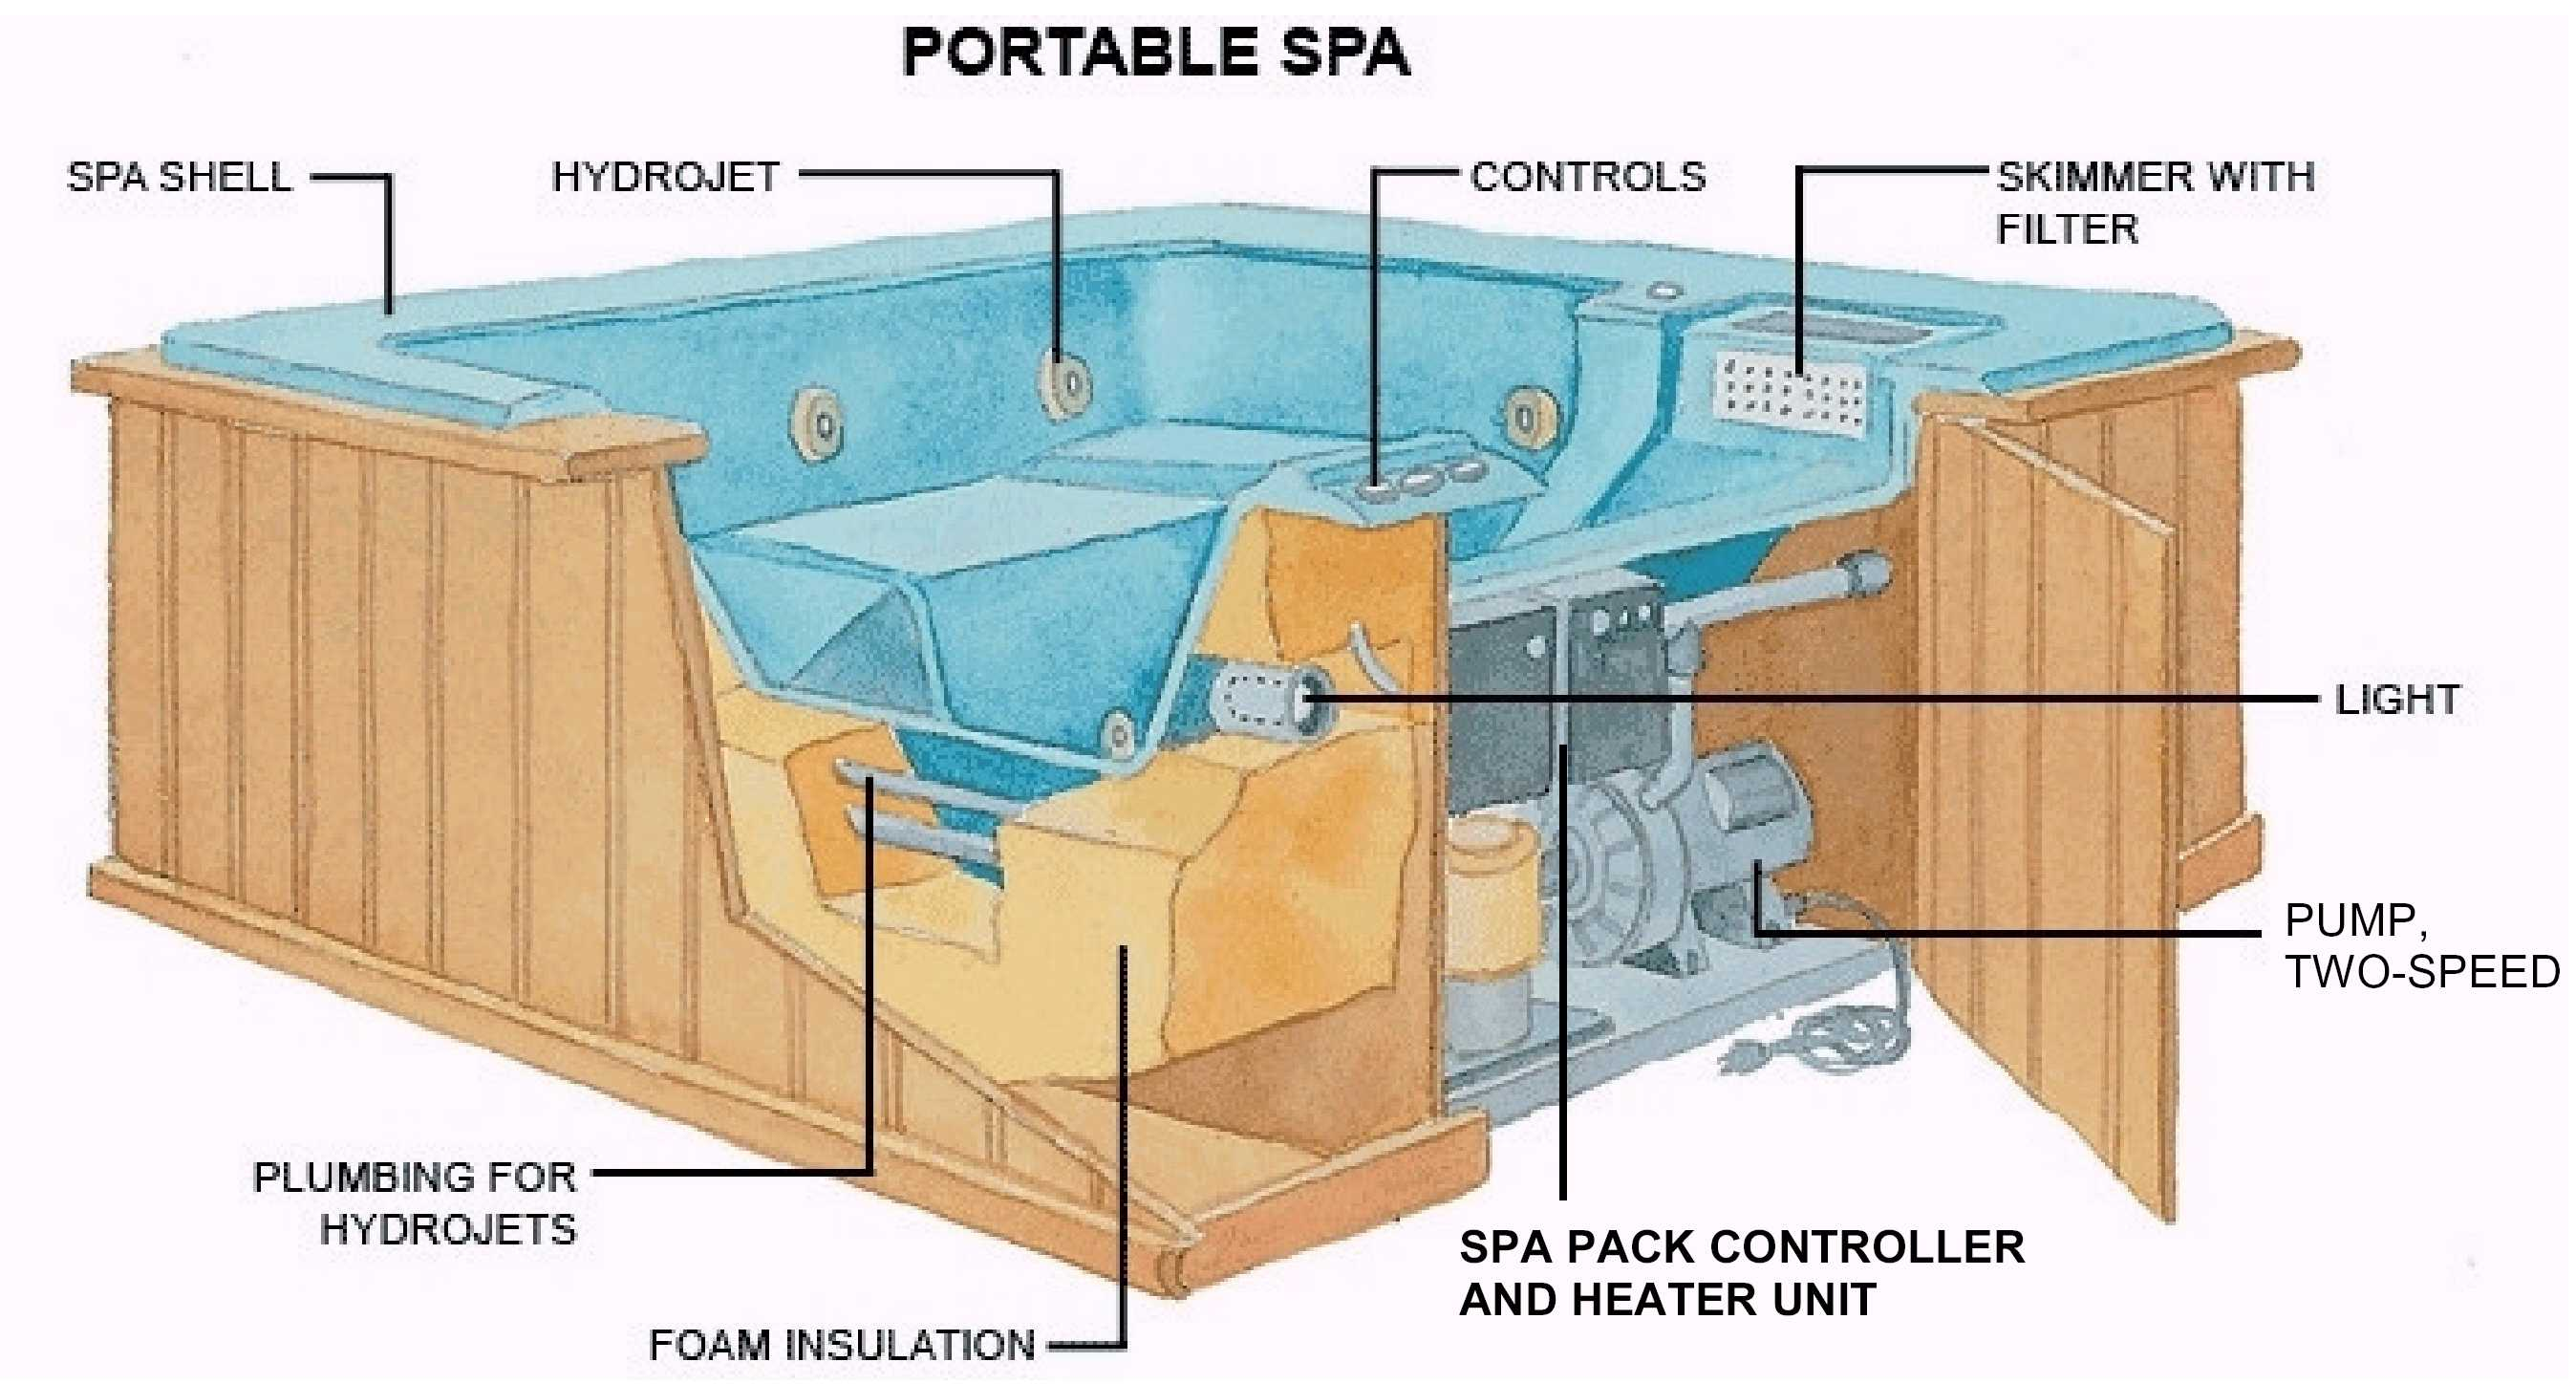 For Hot Tub Flow Switch Wiring Diagram - Wiring Diagrams List Jacuzzi Pump Switch Wiring Diagram on